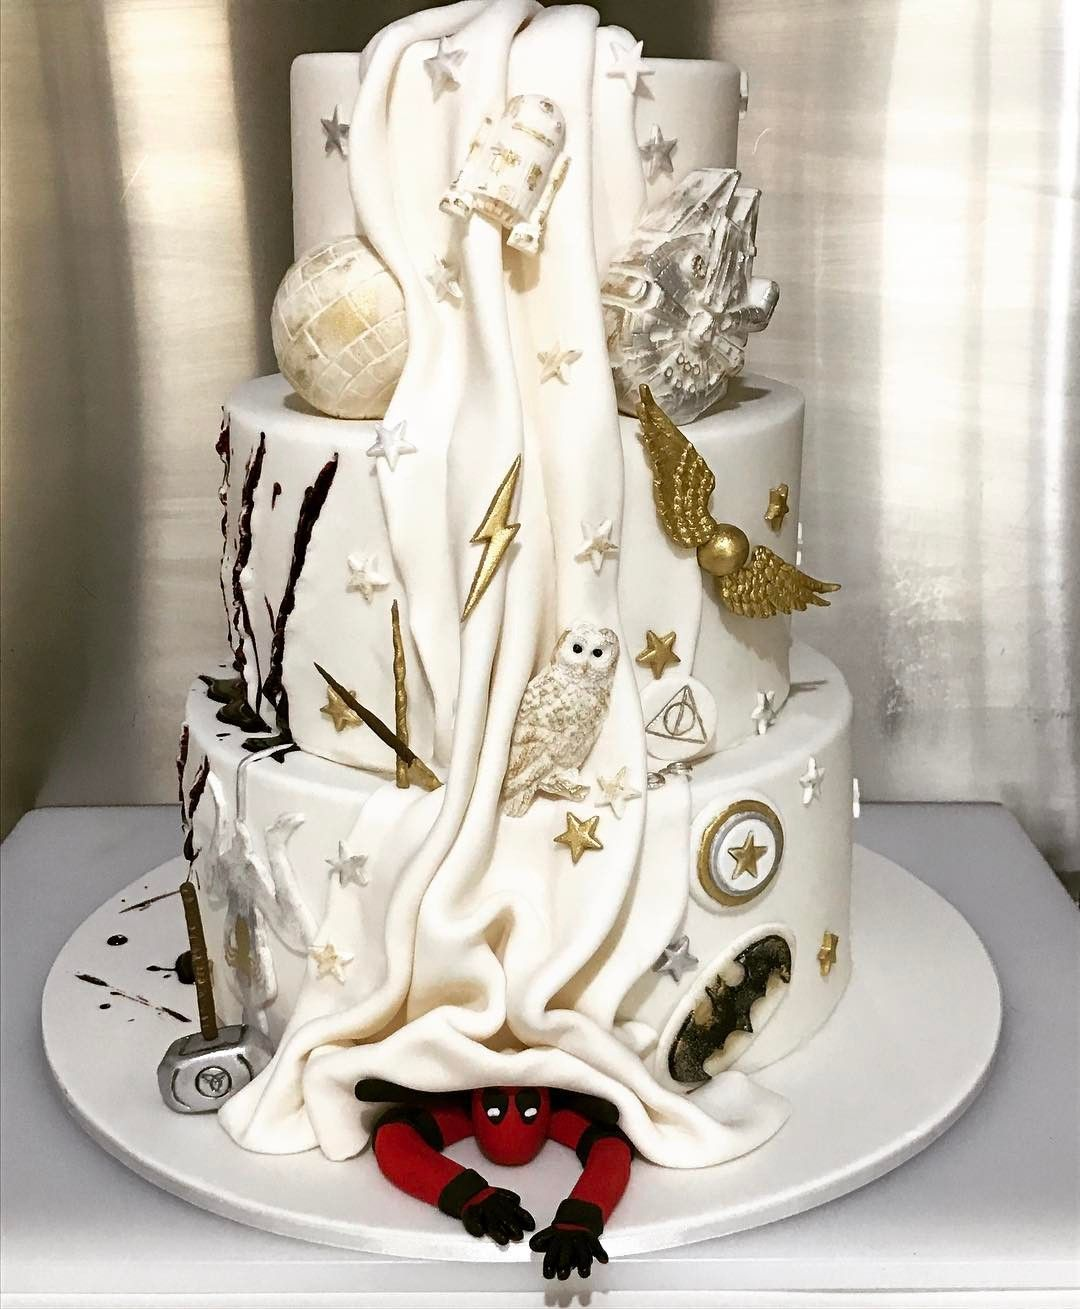 Pin by Beverley Green on Cake | Pinterest | Deadpool, Starwars and ...